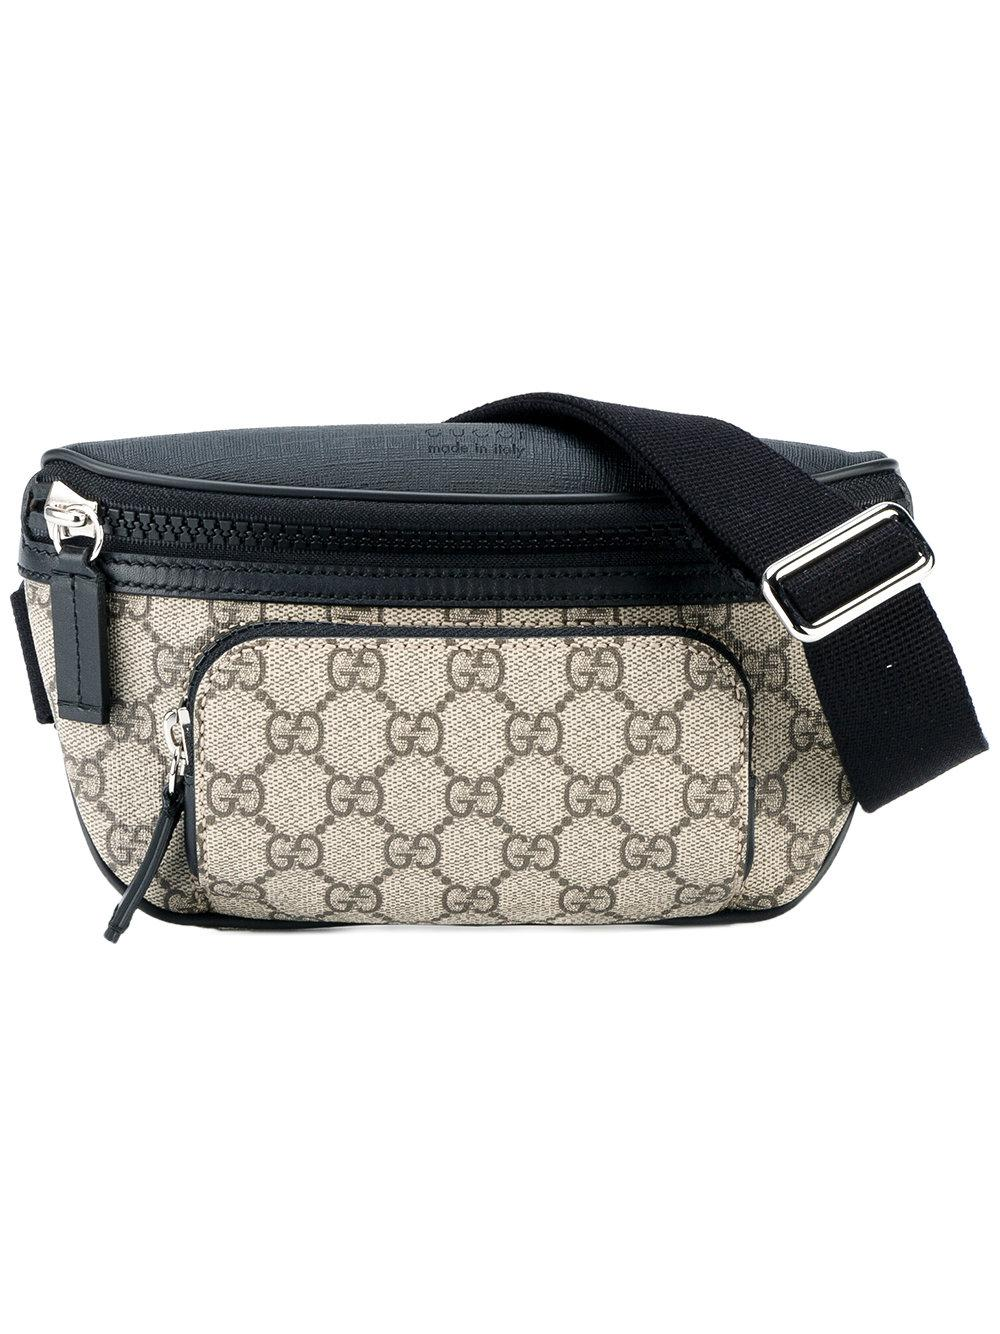 Gucci Gg Supreme Cross Body Bag In Brown For Men Lyst